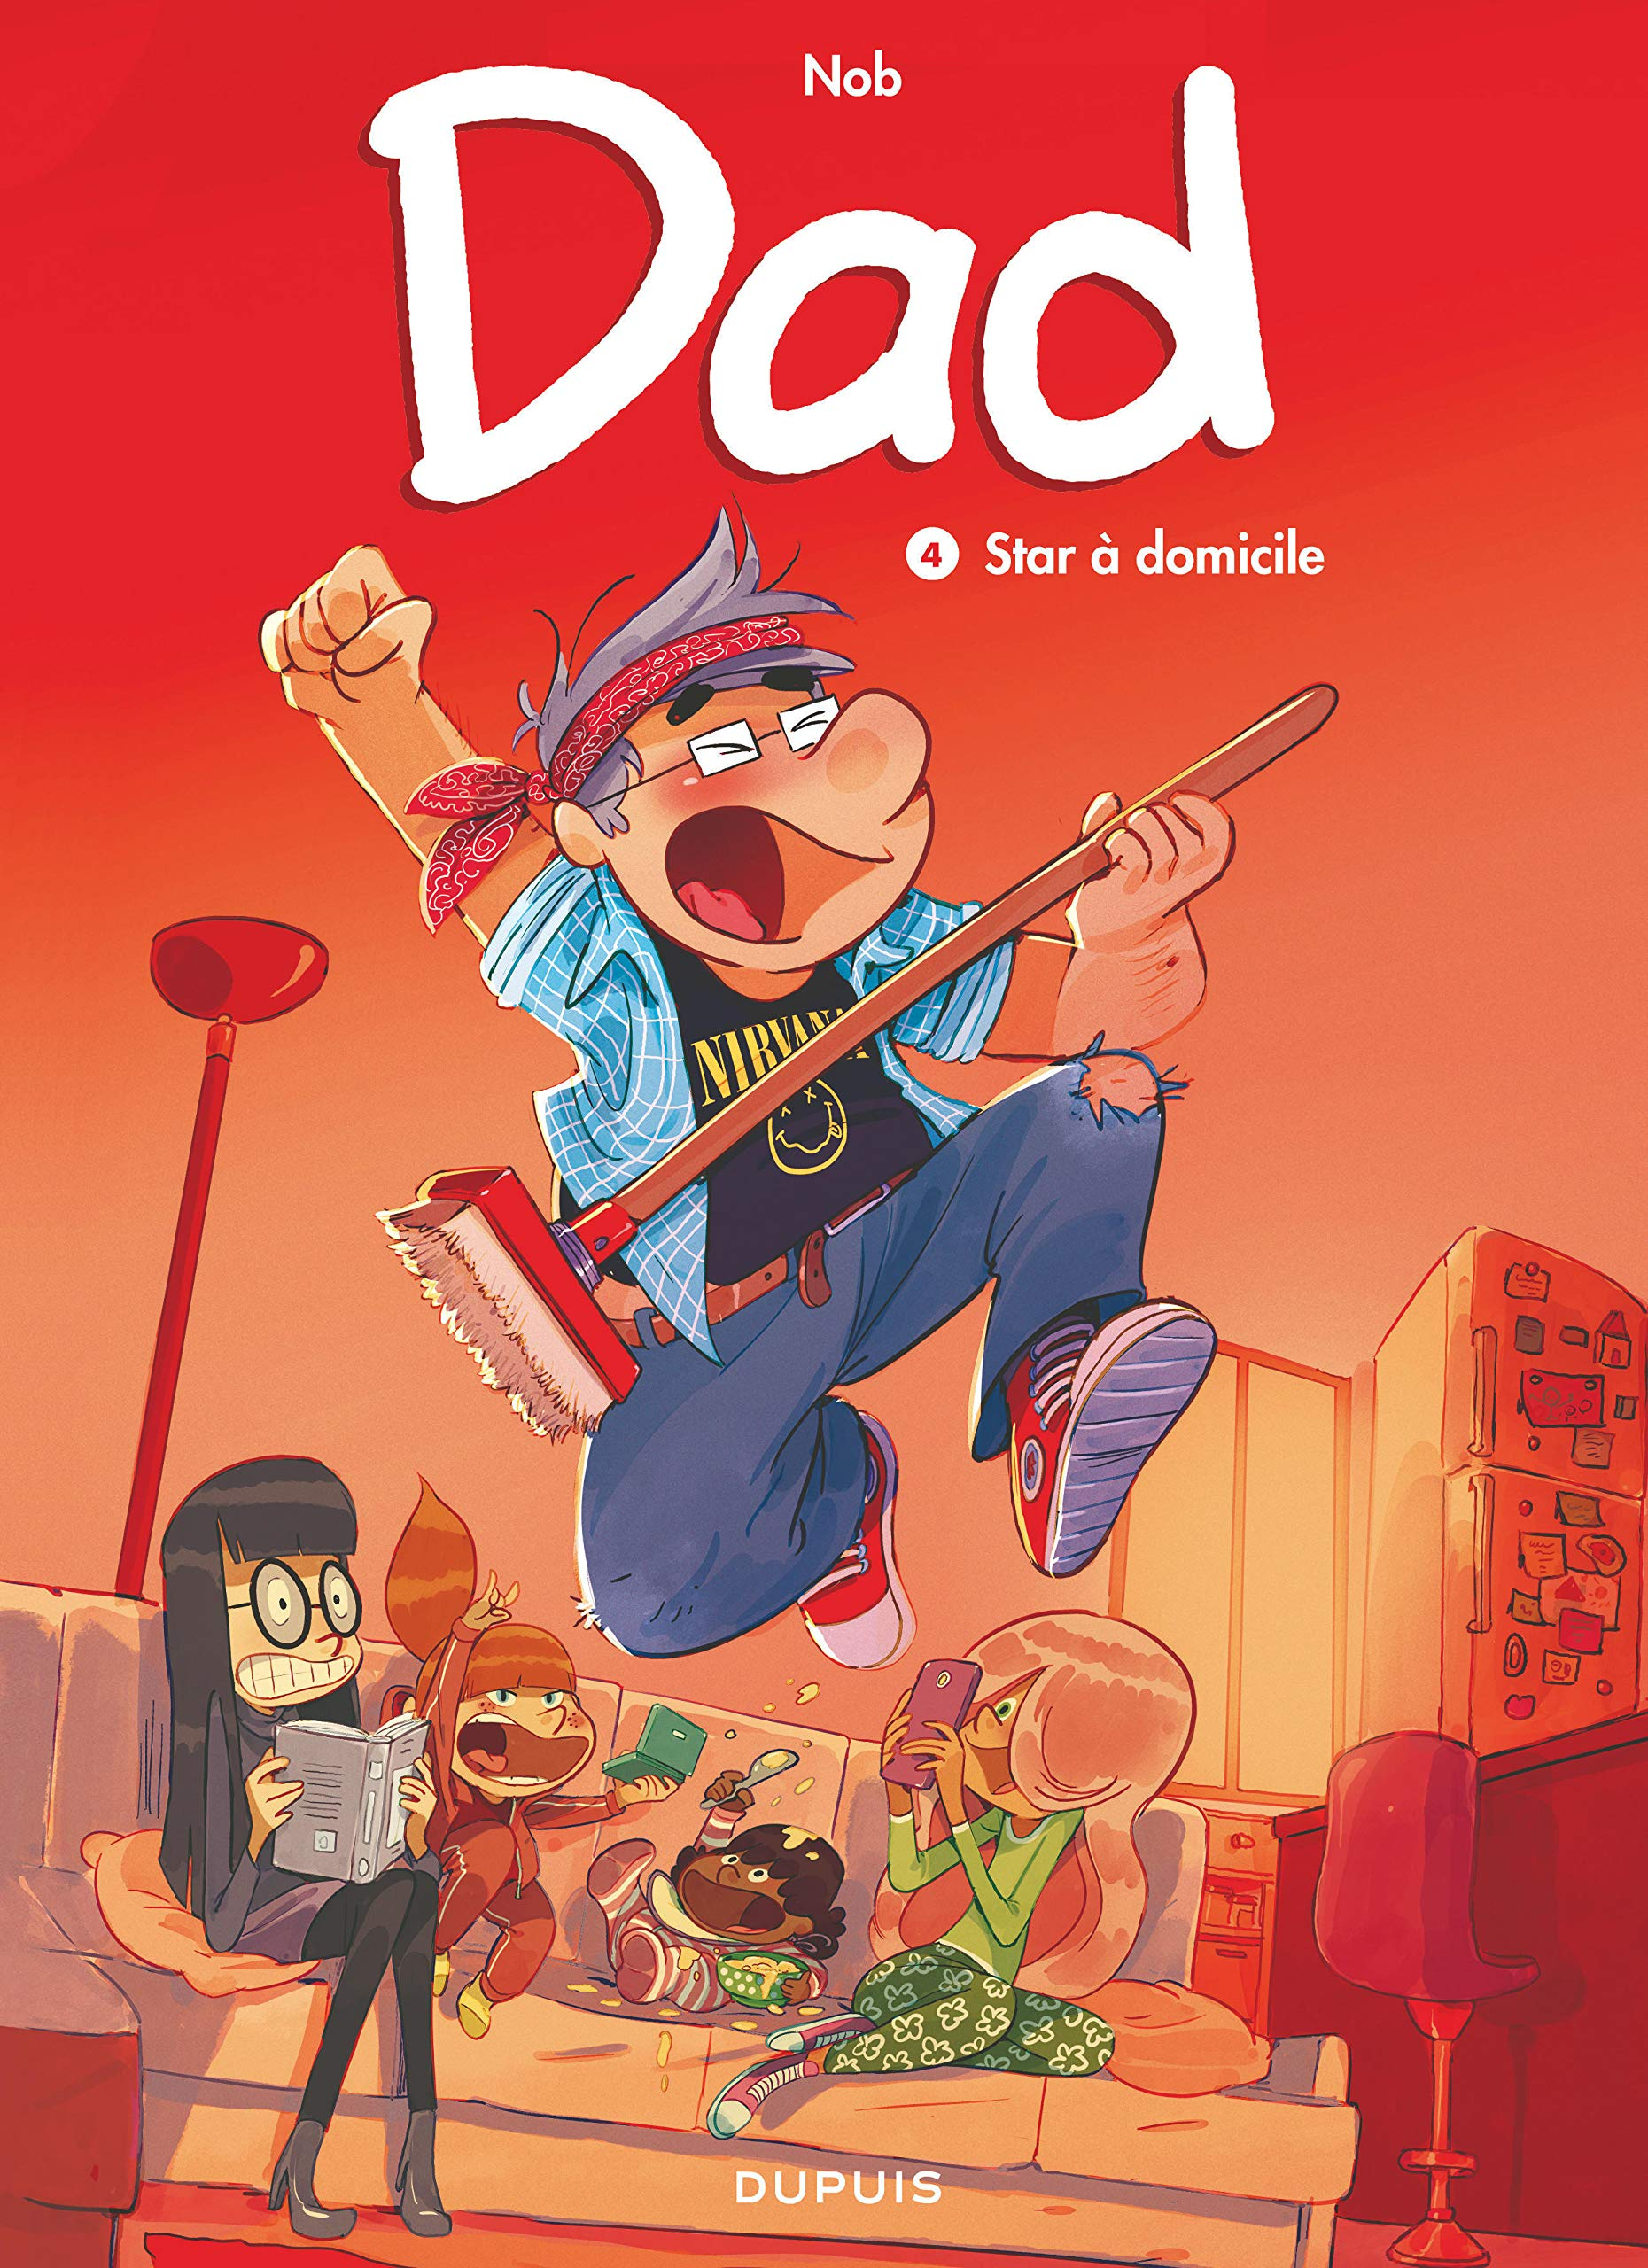 Dad 8/Star a domicile: Amazon.in: Nob: Books